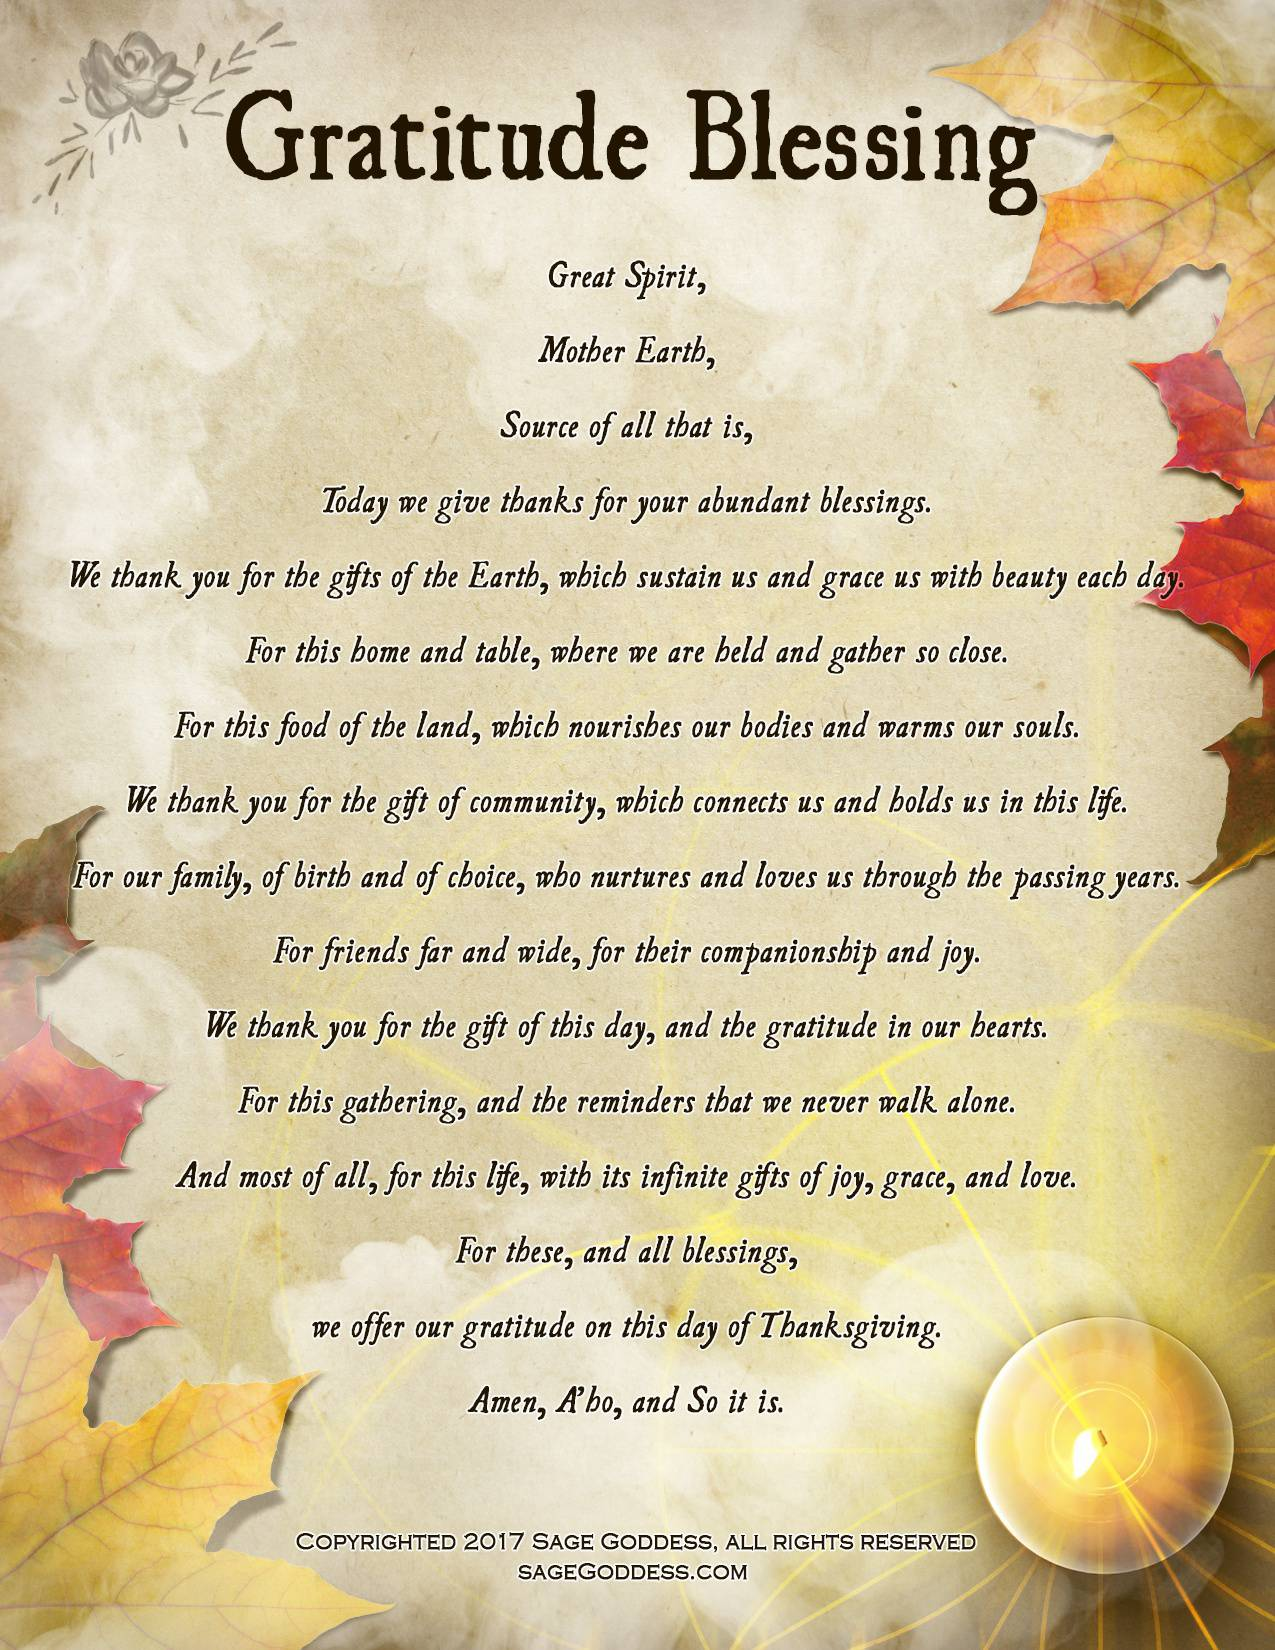 My Invocation of Thankfulness and Gratitude